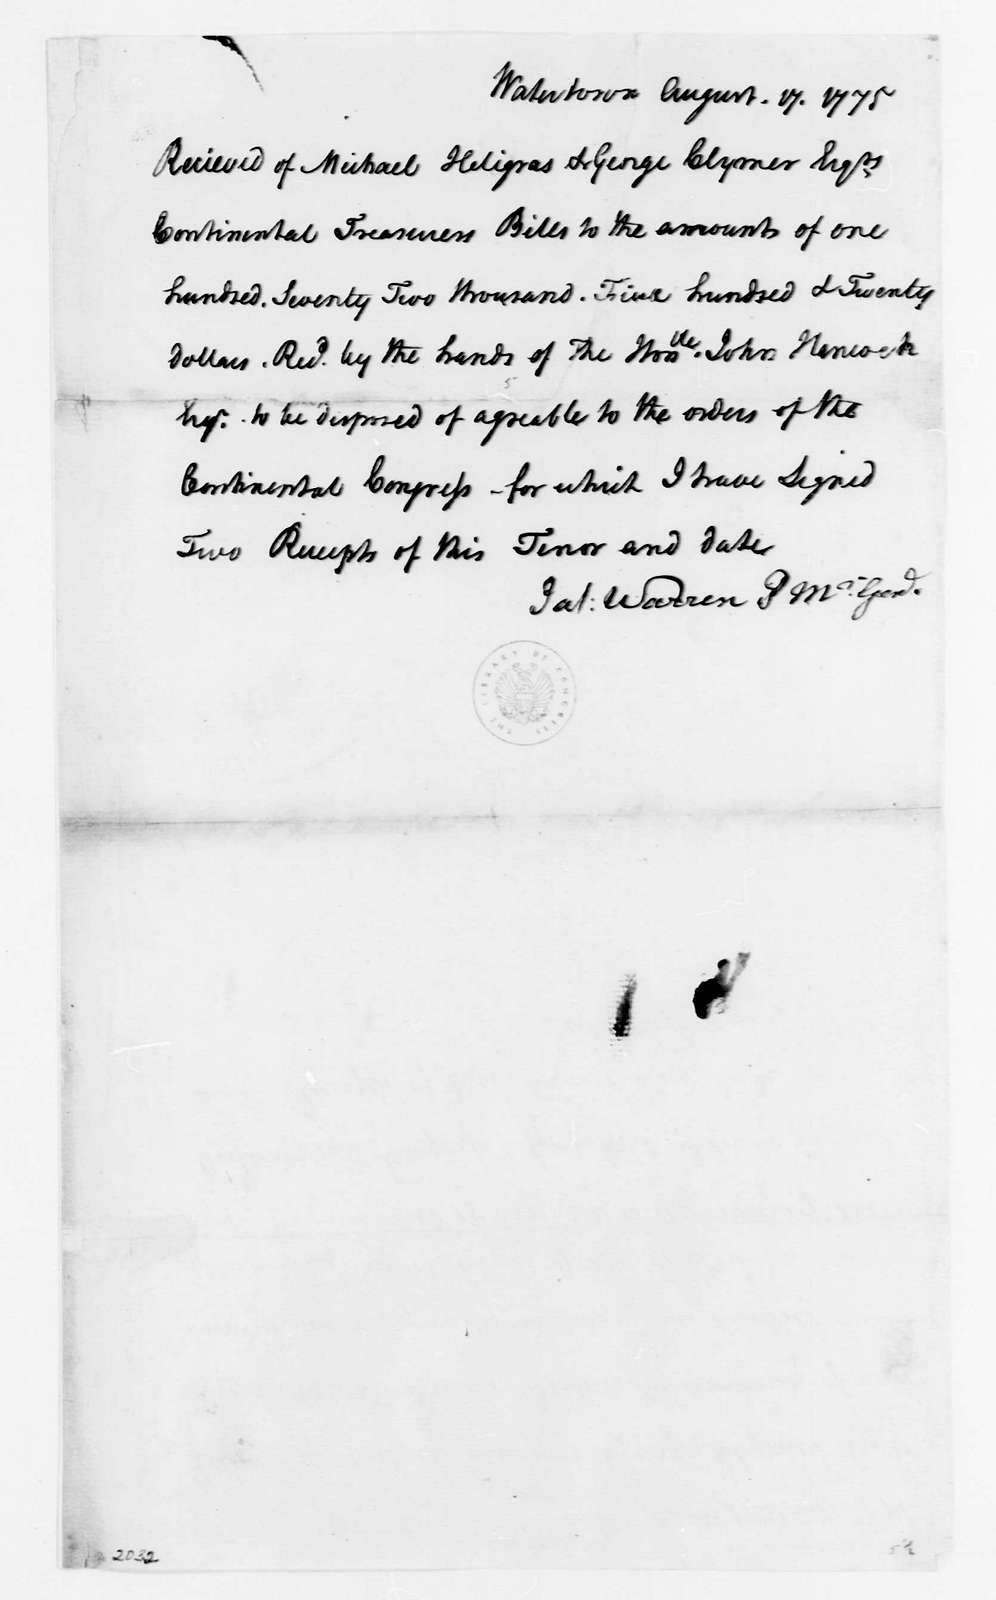 George Washington Papers, Series 4, General Correspondence: James Warren, August 17, 1775, Continental Army Receipt